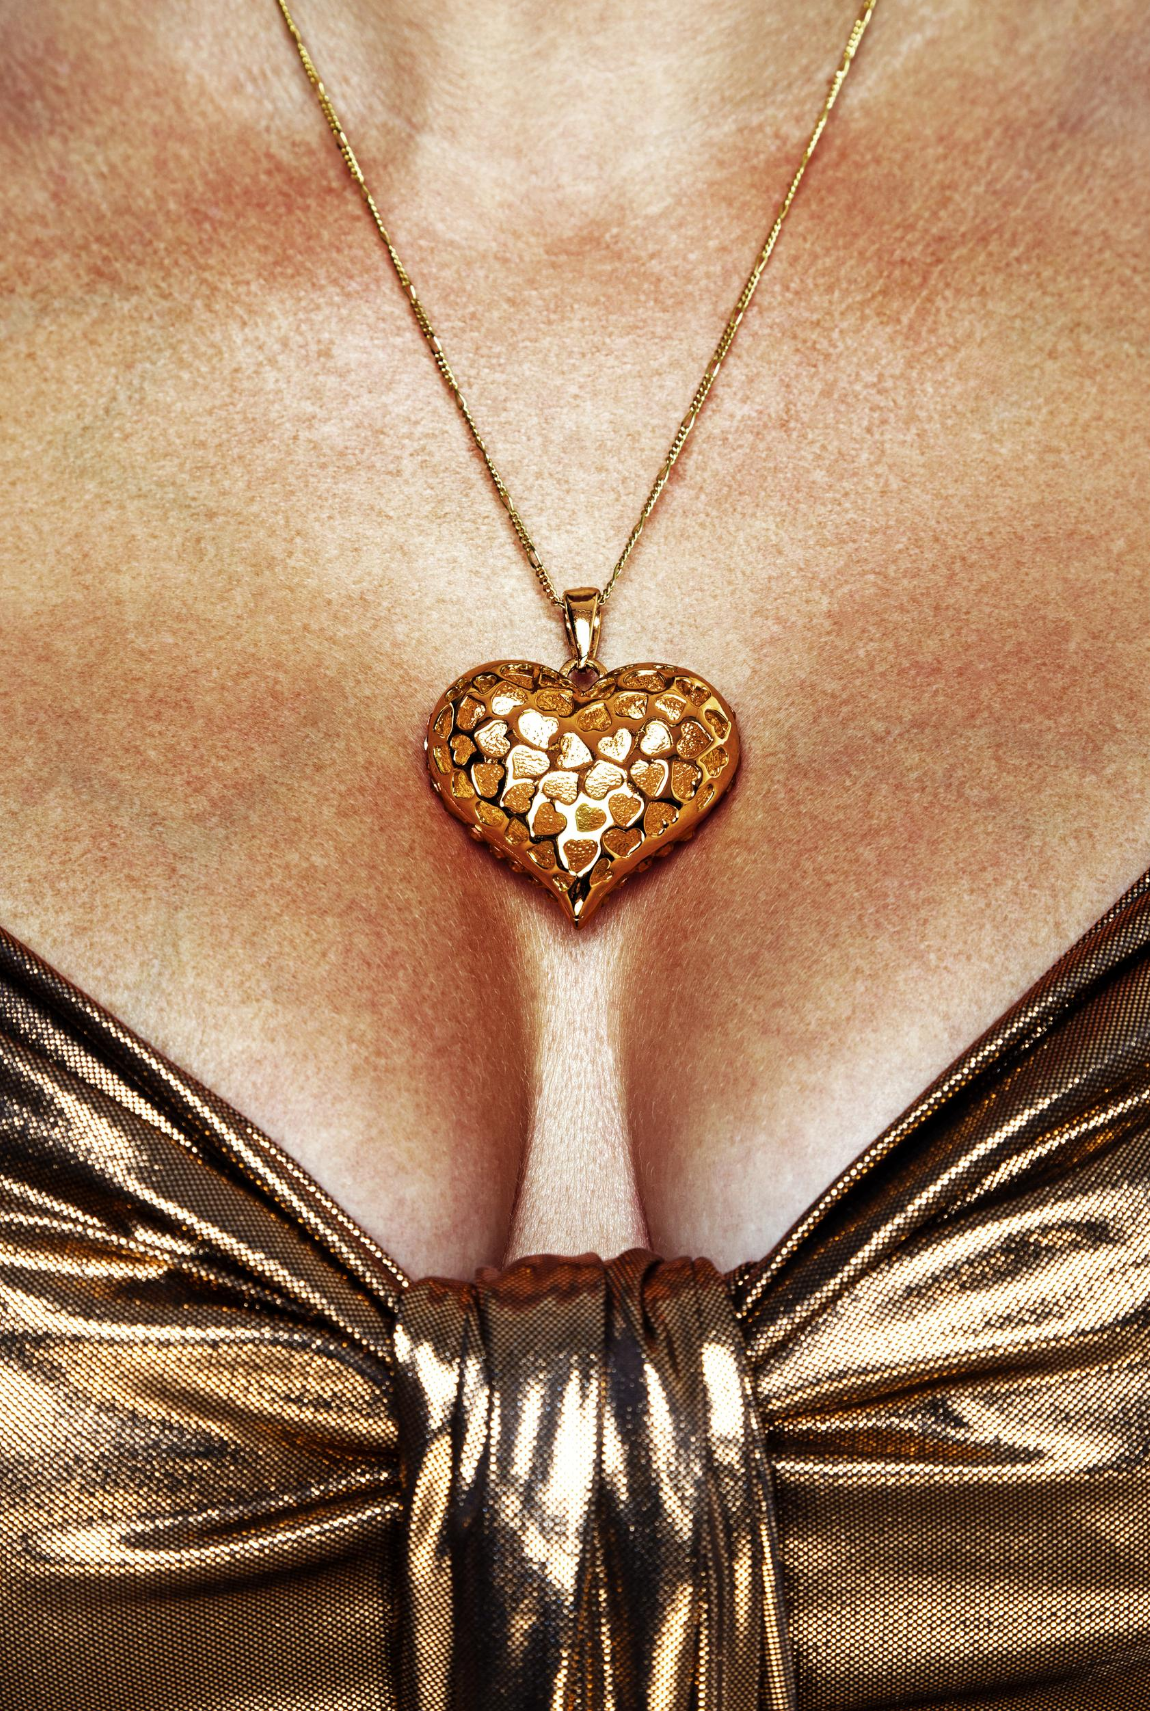 Heart Pendant at decollete